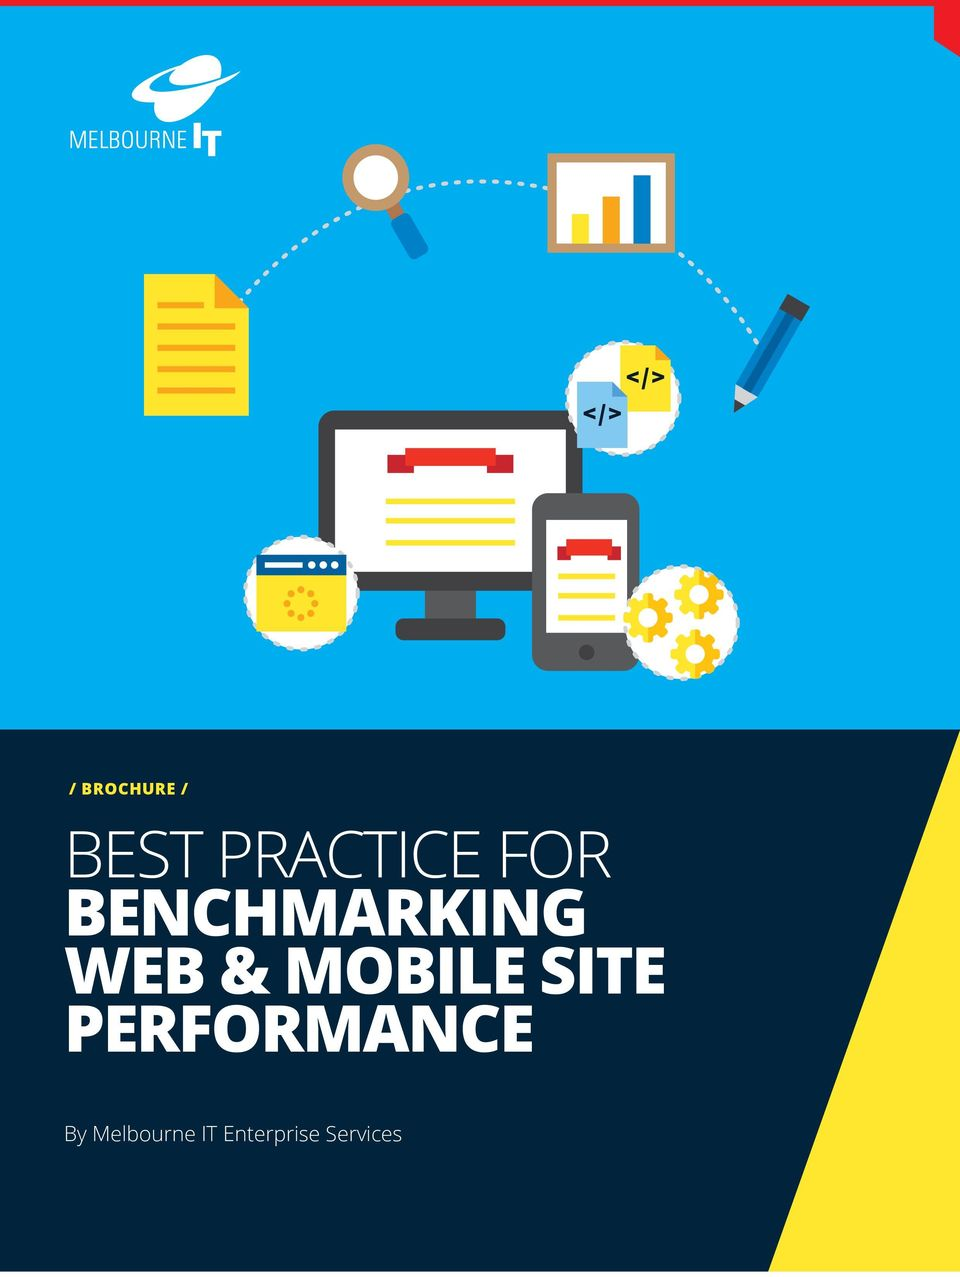 MOBILE SITE PERFORMANCE By